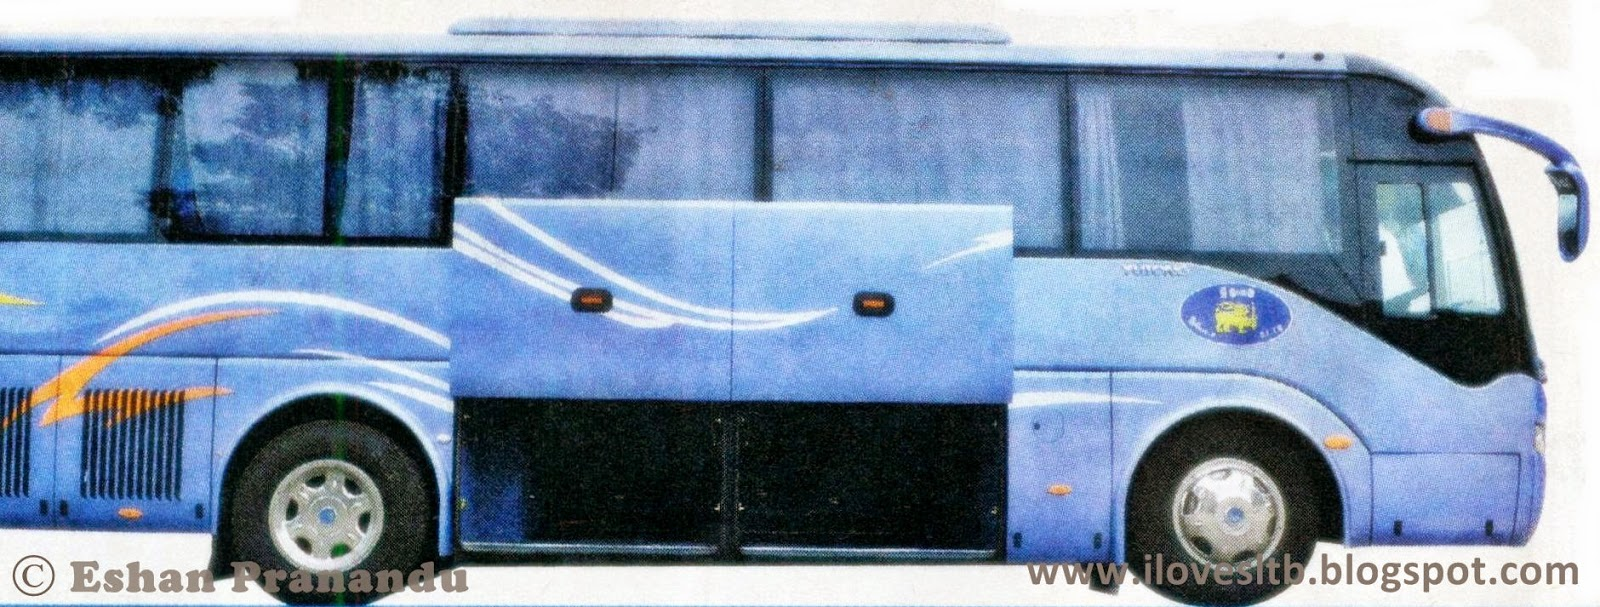 SLTB super luxury tourist transport service_www.ilovesltb.blogspot.com_SLTB_CTB_SLTB BUS_Luxury buses